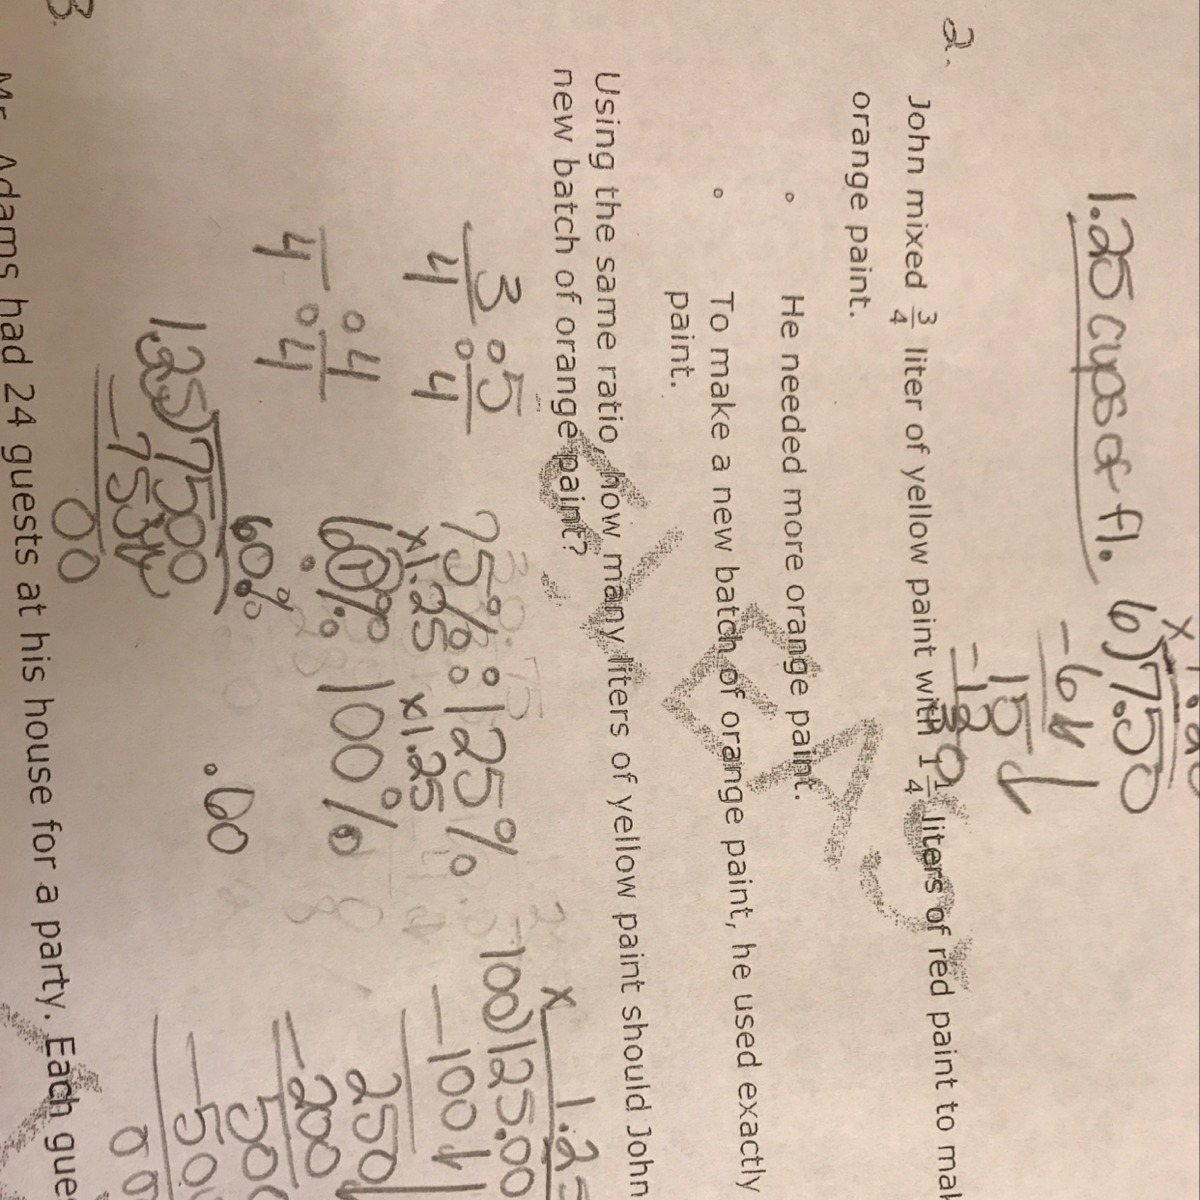 Set Builder Notation X X Is An Integer And 4 Less Than